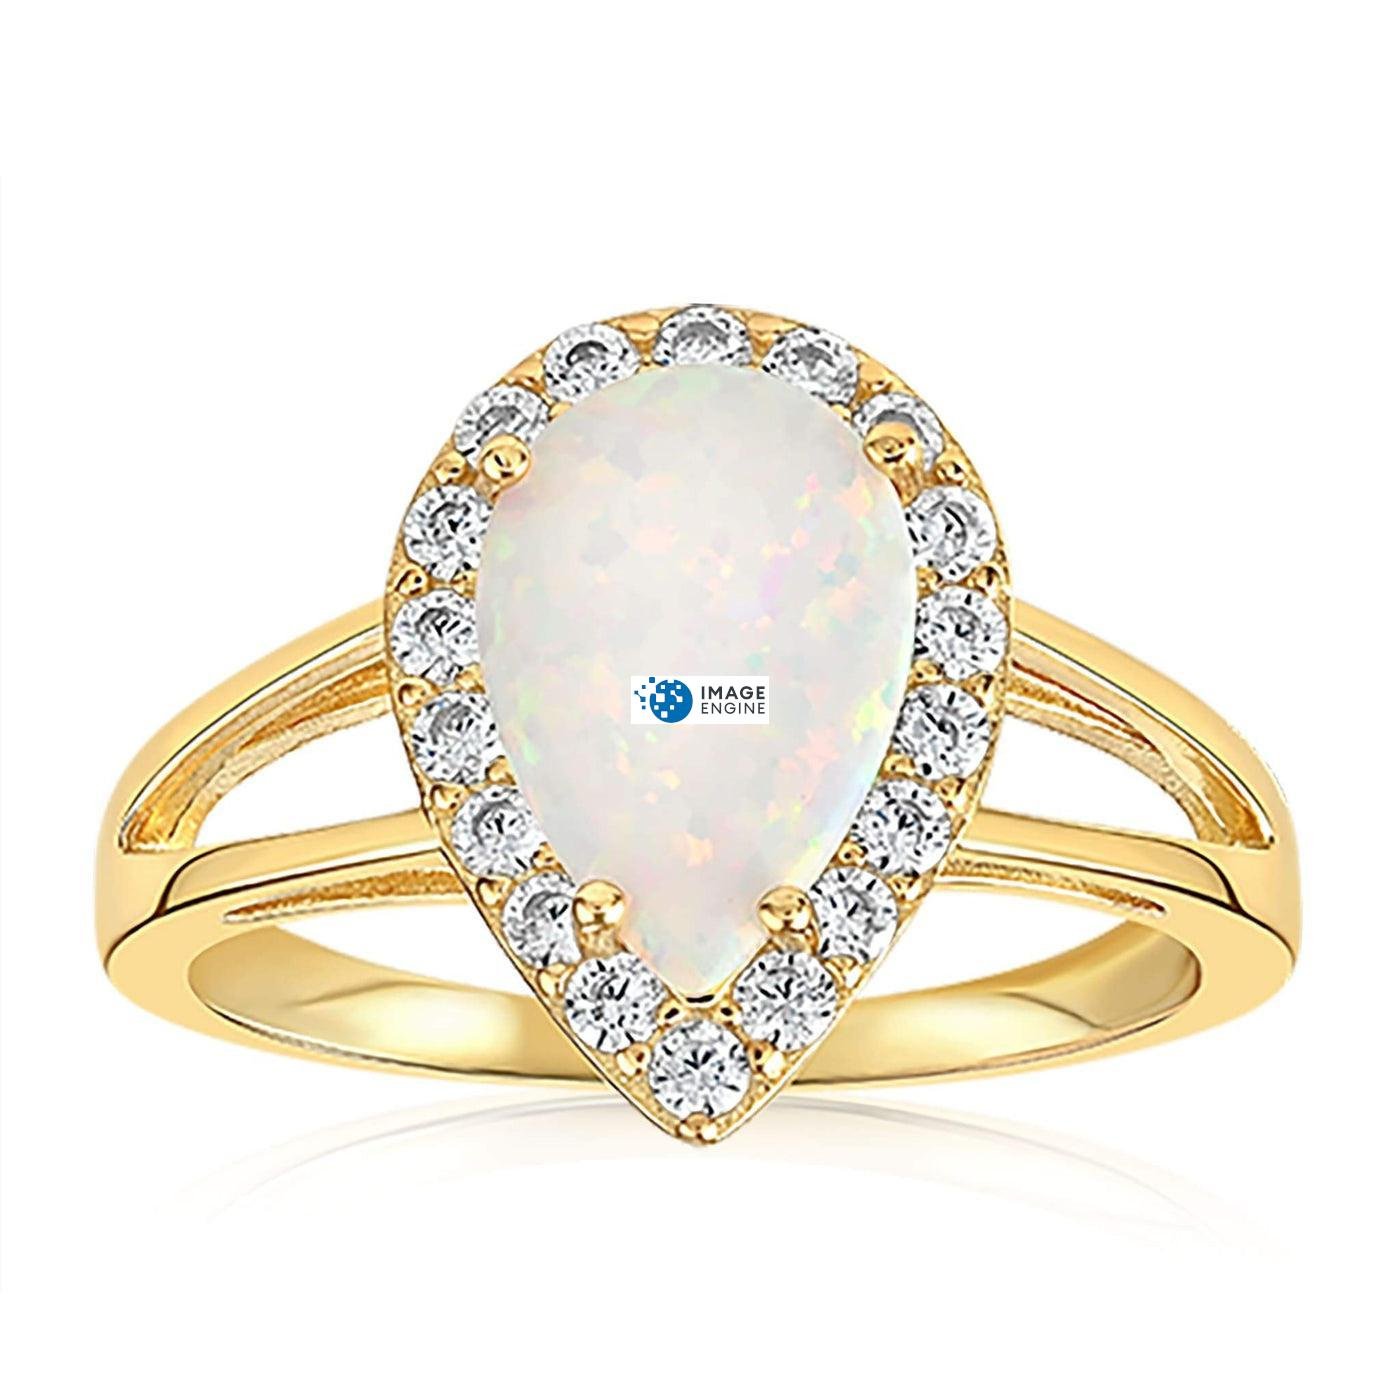 White Fire Champagne Opal Ring - Front View Facing Down - 18K Yellow Gold Vermeil